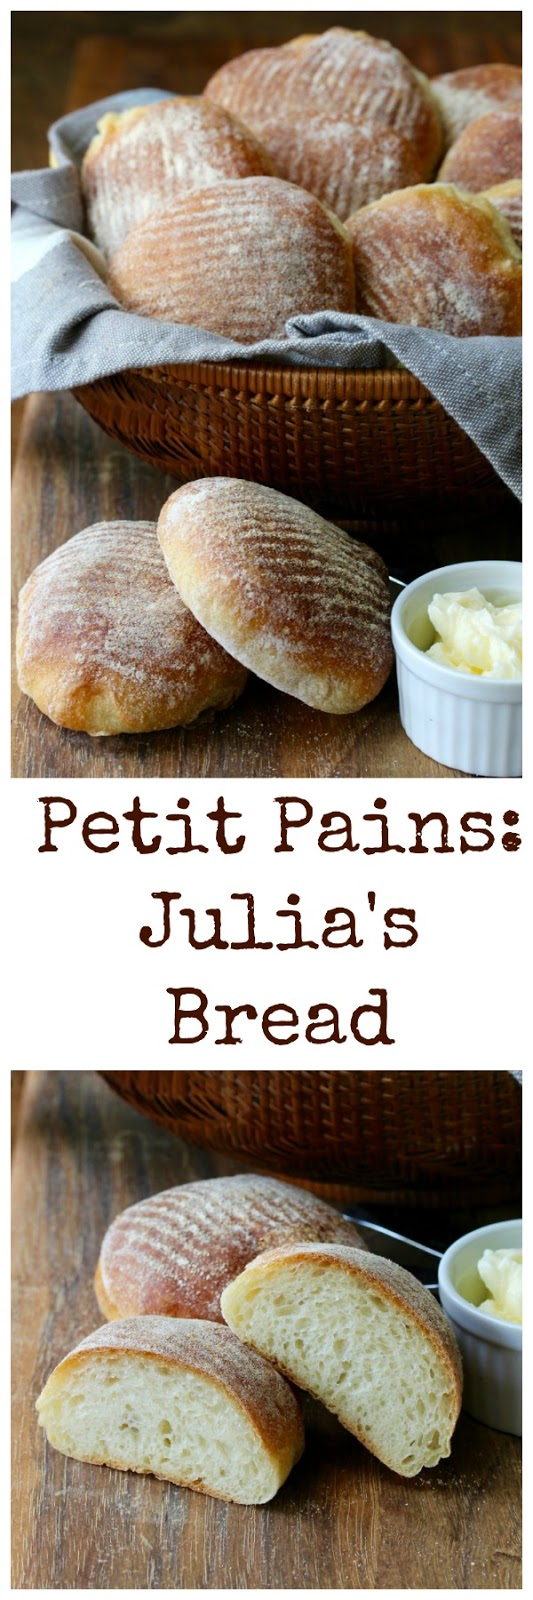 Petit Pains Julia's Bread